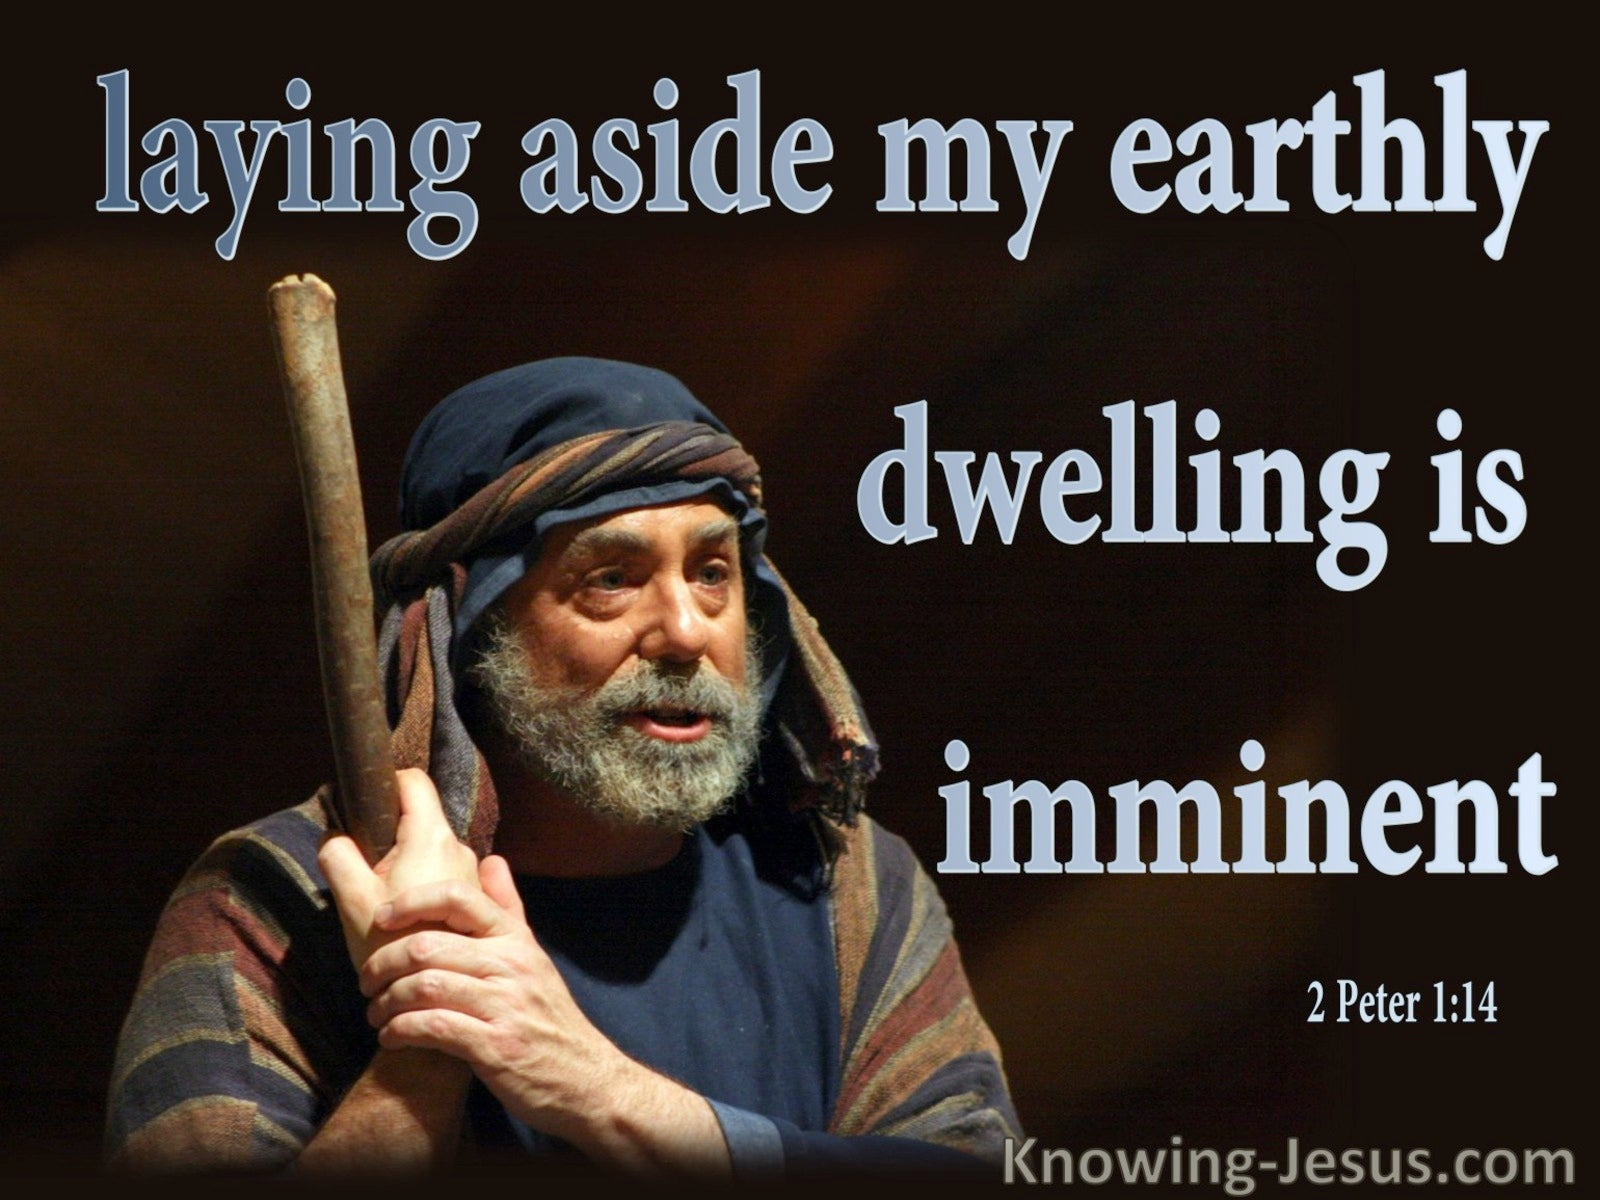 2 Peter 1:14 Laying Aside My Earthy Dwelling Is Imminent (blue)